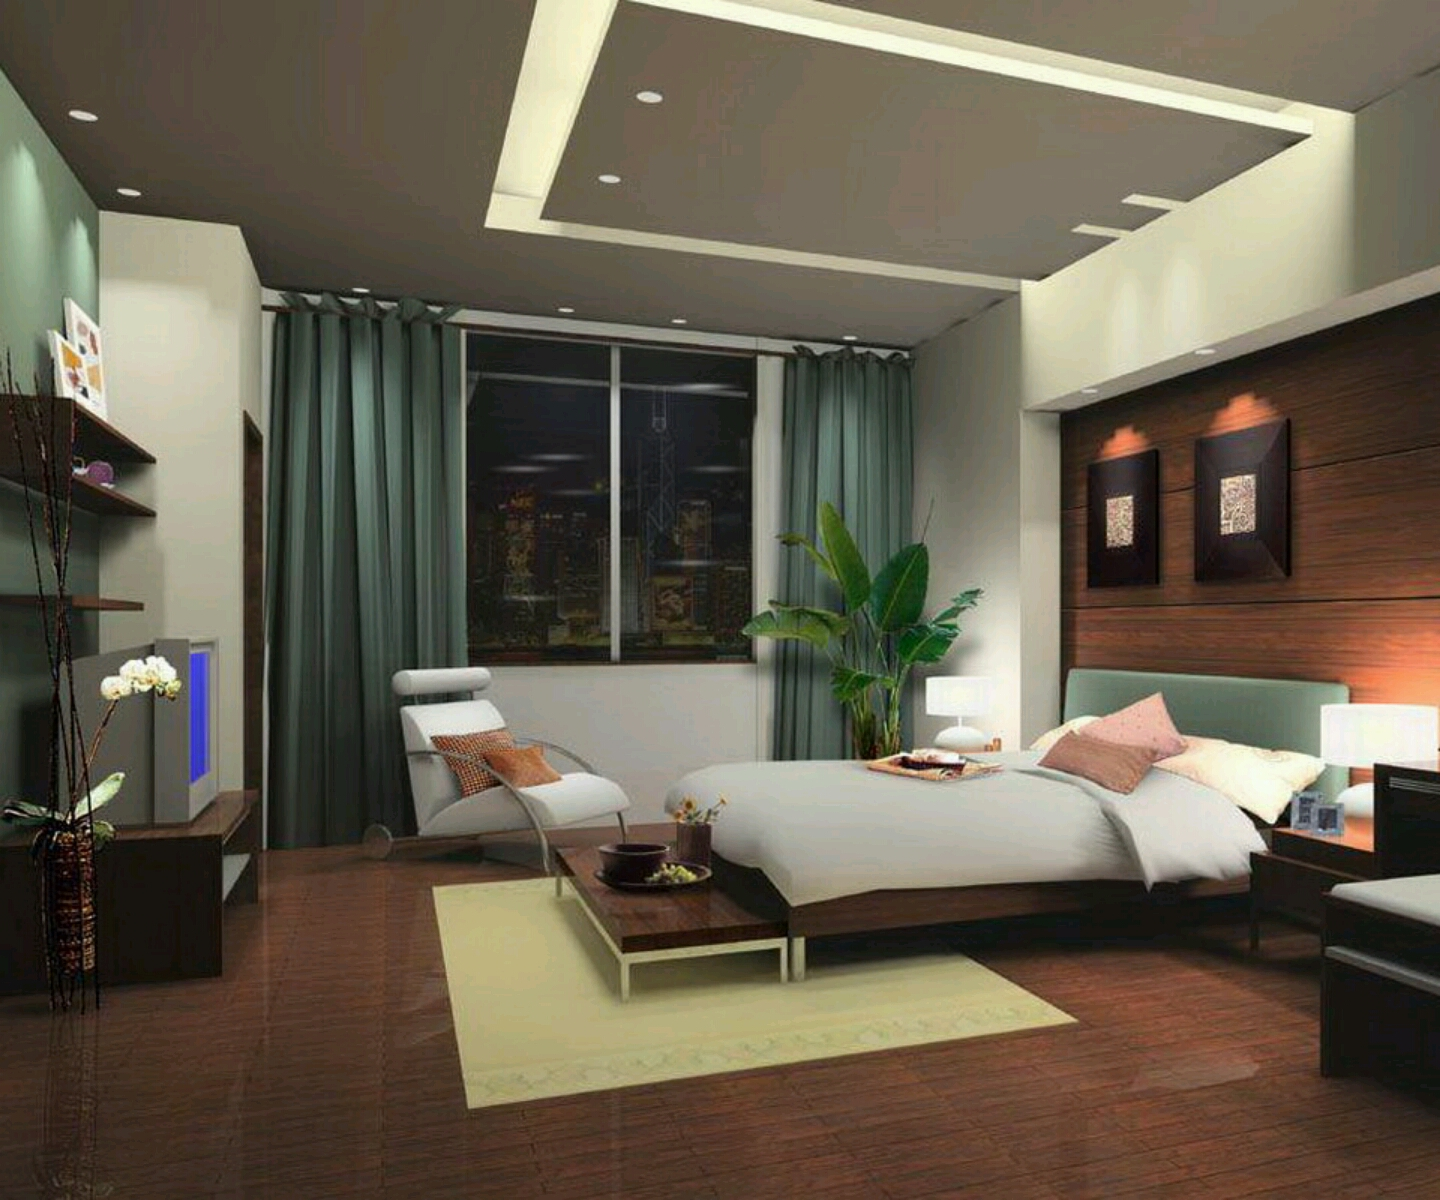 New home designs latest modern bedrooms designs best ideas for Room ideas